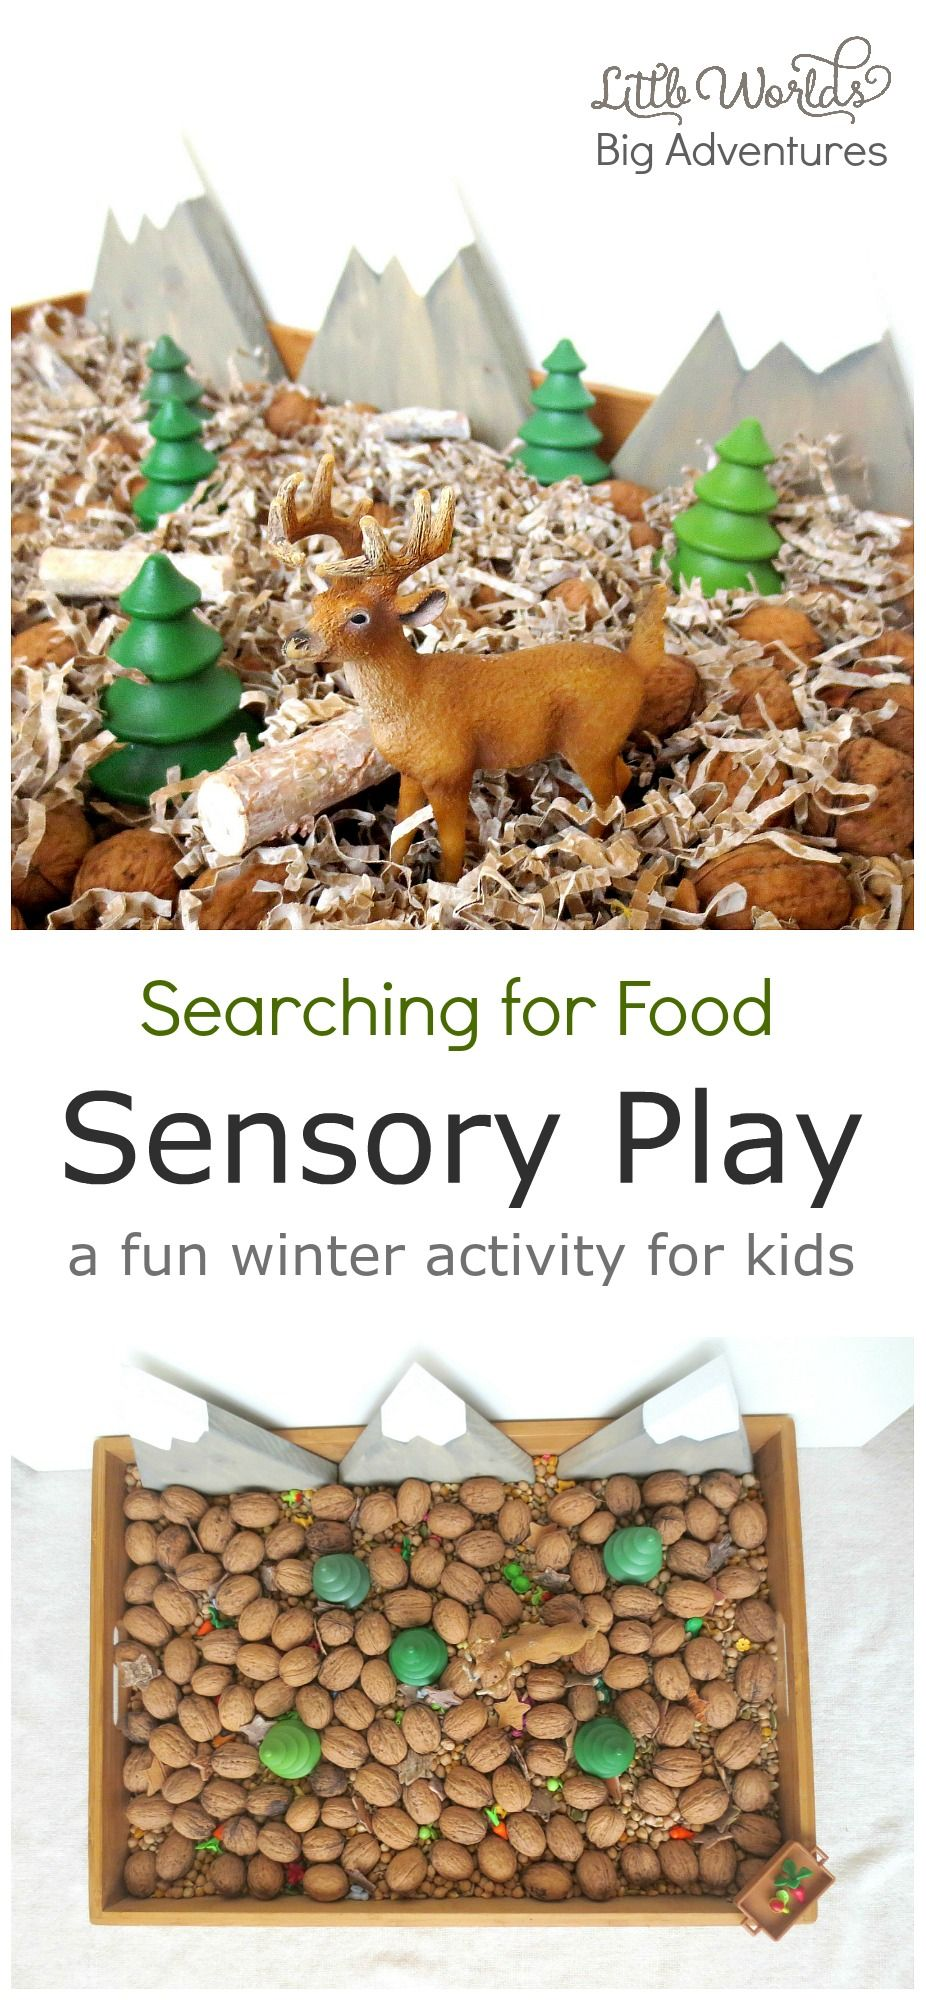 Help Bambi search for food during the cold winter days  with this fun sensory play activity toddlers and preschoolers will adore! | Little Worlds Big Adventures